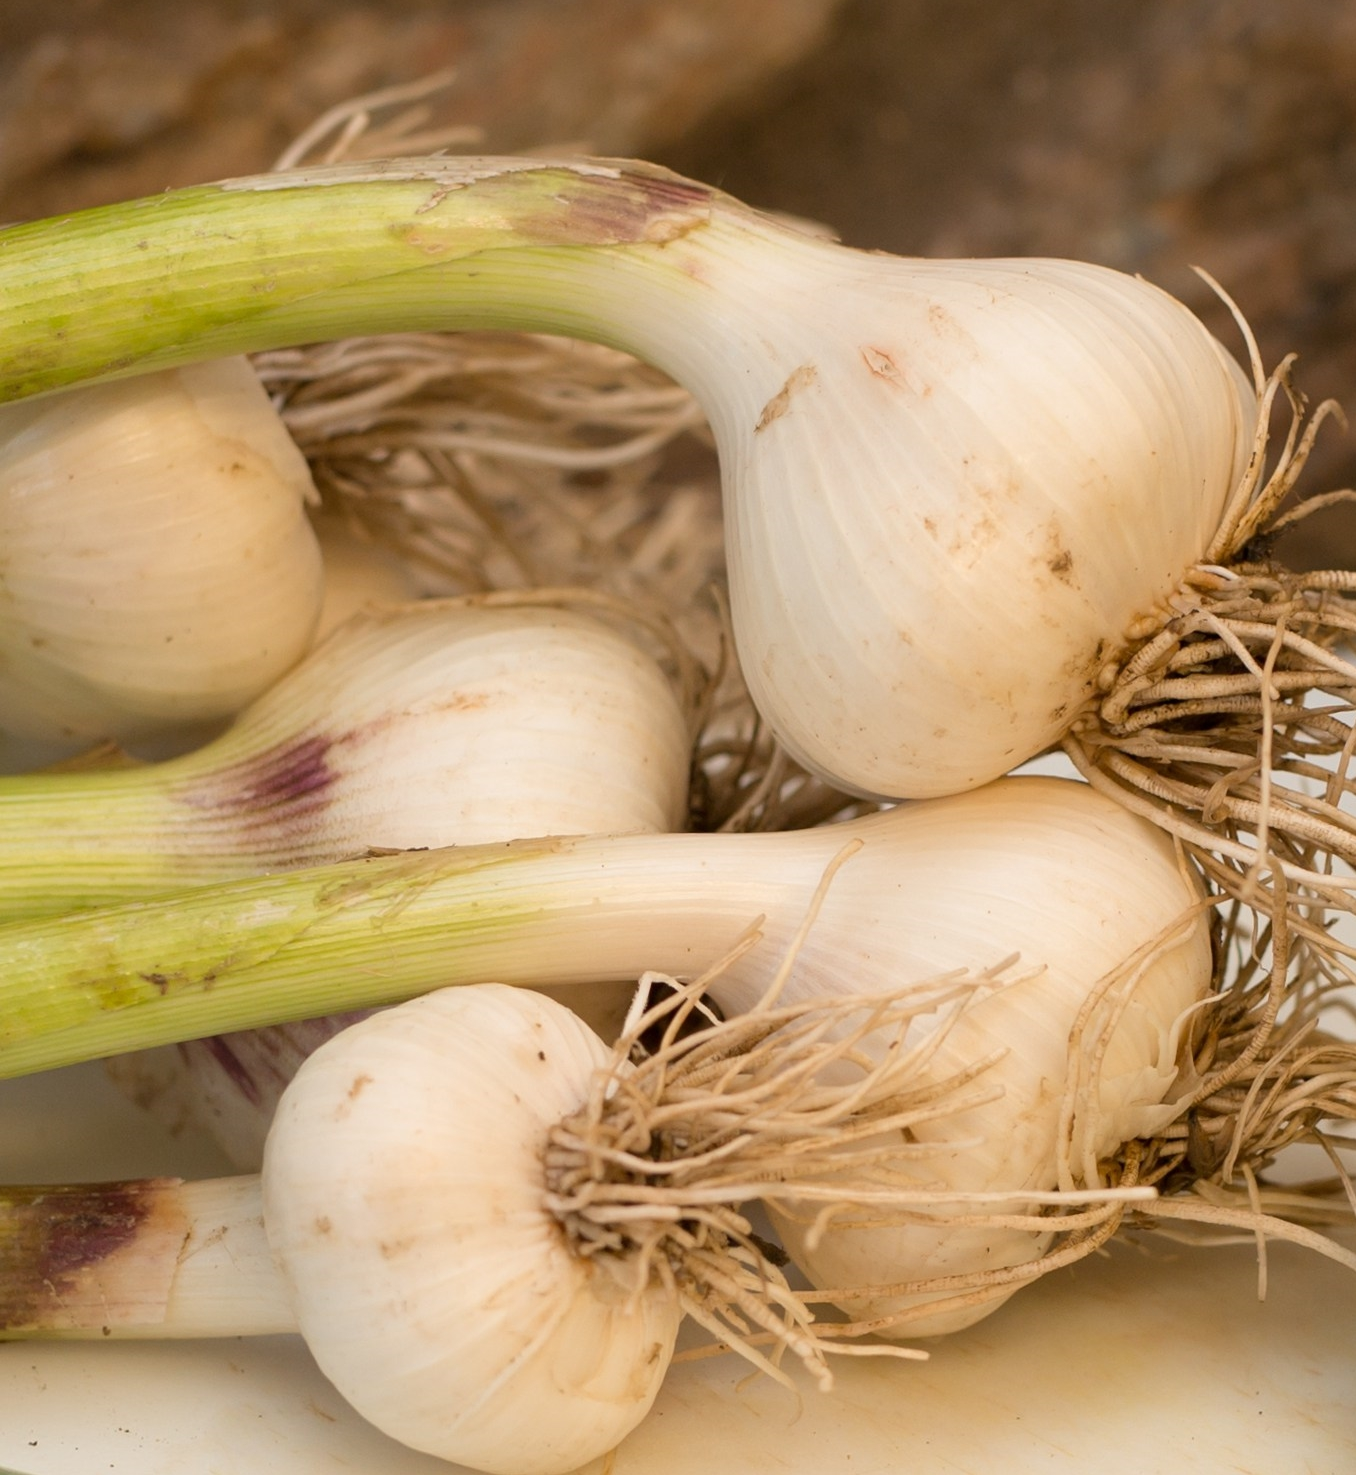 Garlic bulbs can have between six and twenty cloves.